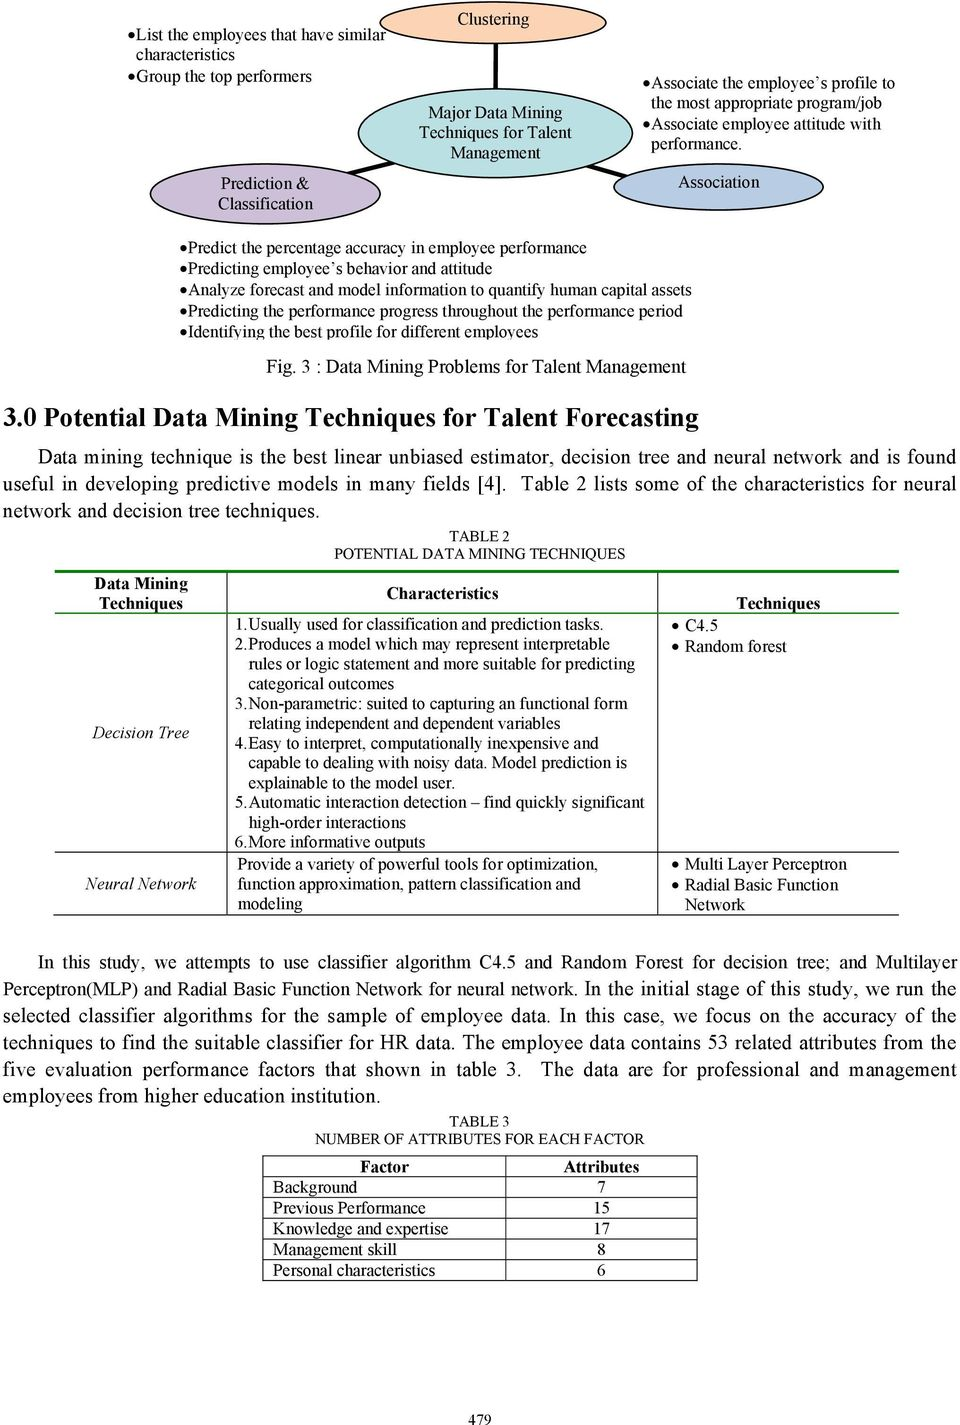 0 Potential Data Mining Techniques for Talent Forecasting Data mining technique is the best linear unbiased estimator, decision tree and neural network and is found useful in developing predictive